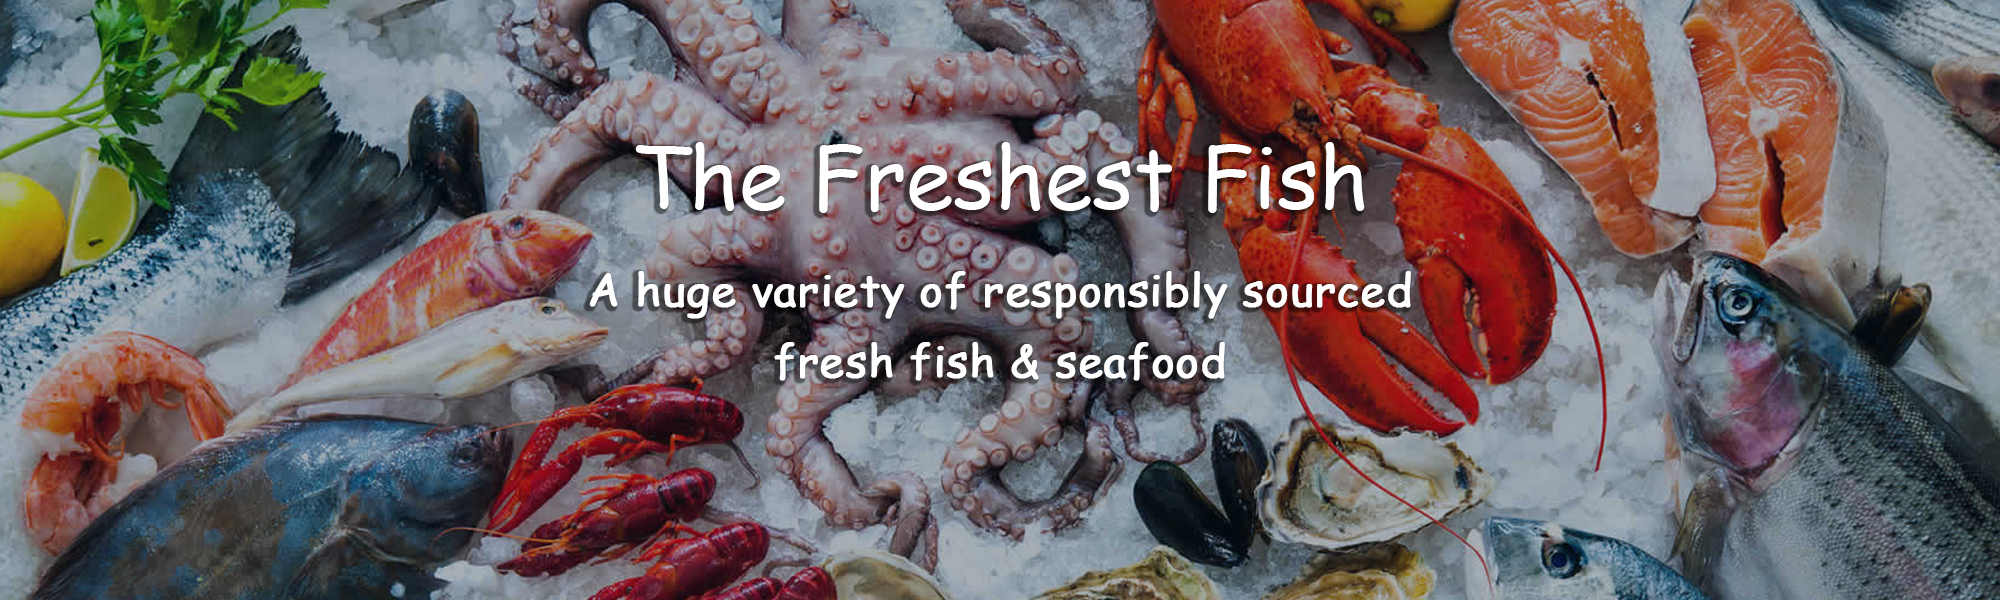 Responsibly sourced fresh fish